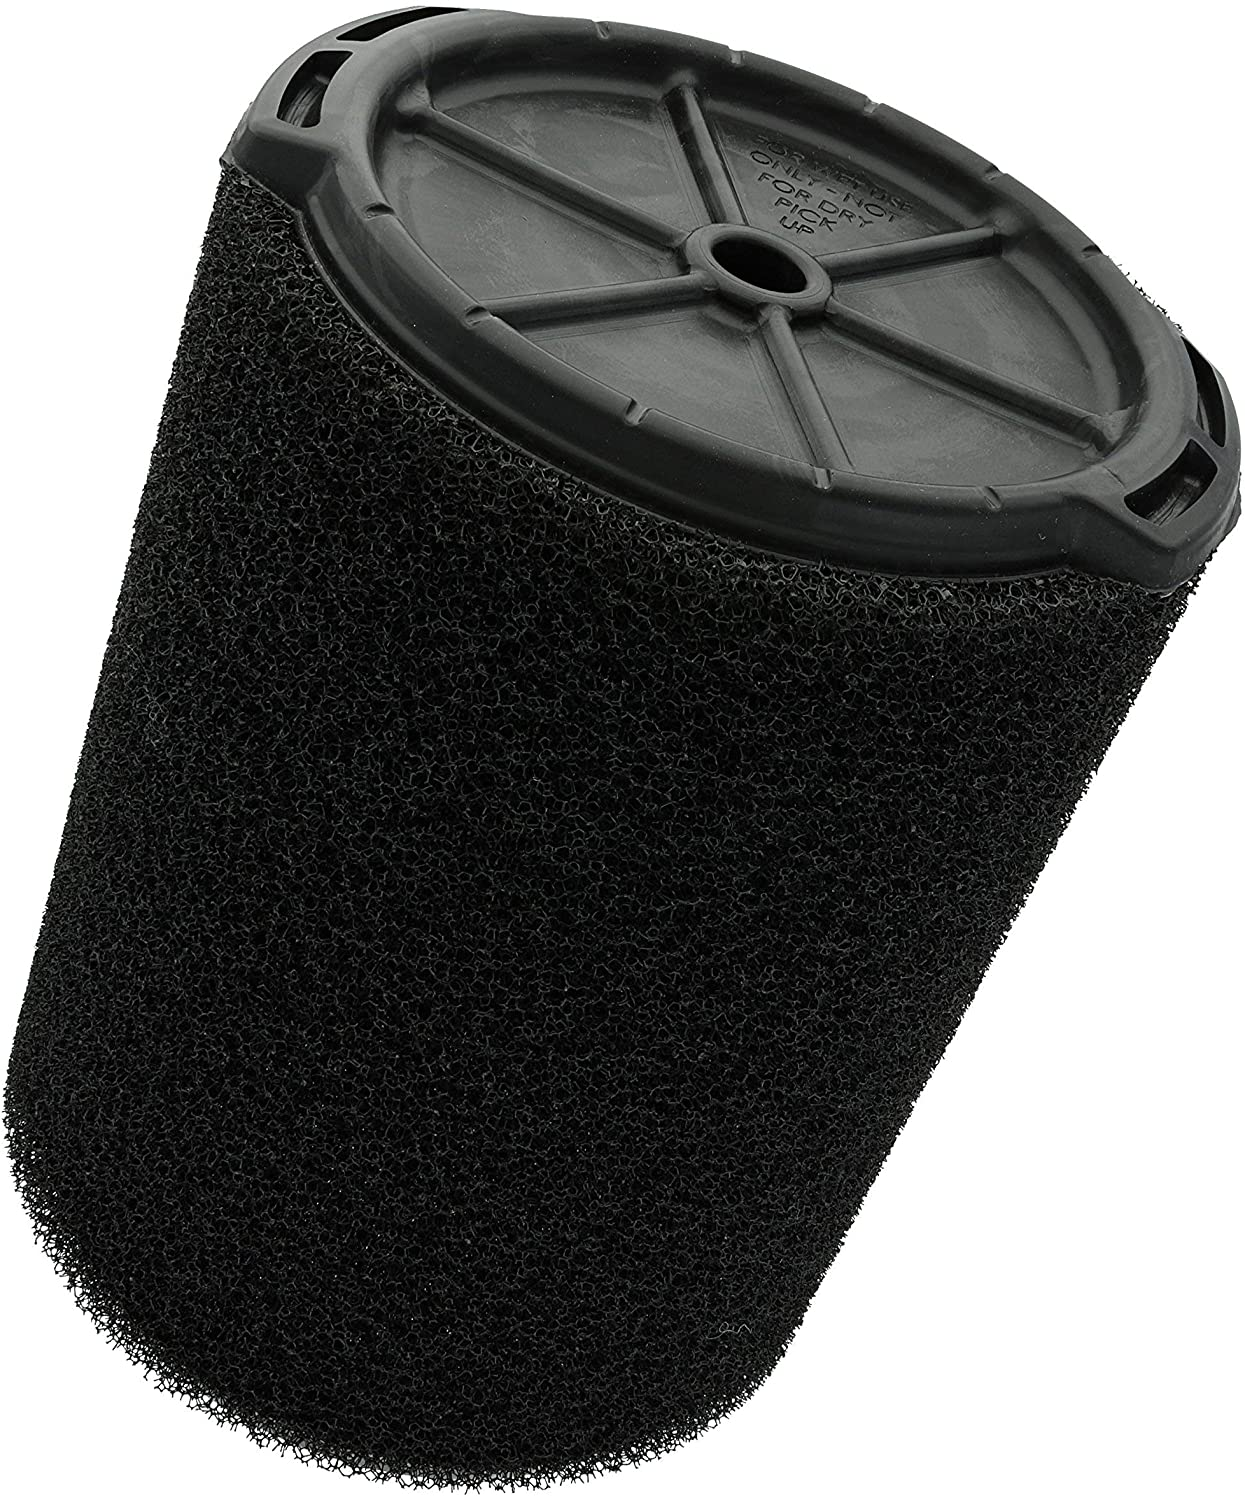 Ridgid VF7000 Genuine Replacement Foam Wet Application Only Vac Filter for Ridgid 5-20 Gallon Wet Dry Vacuums